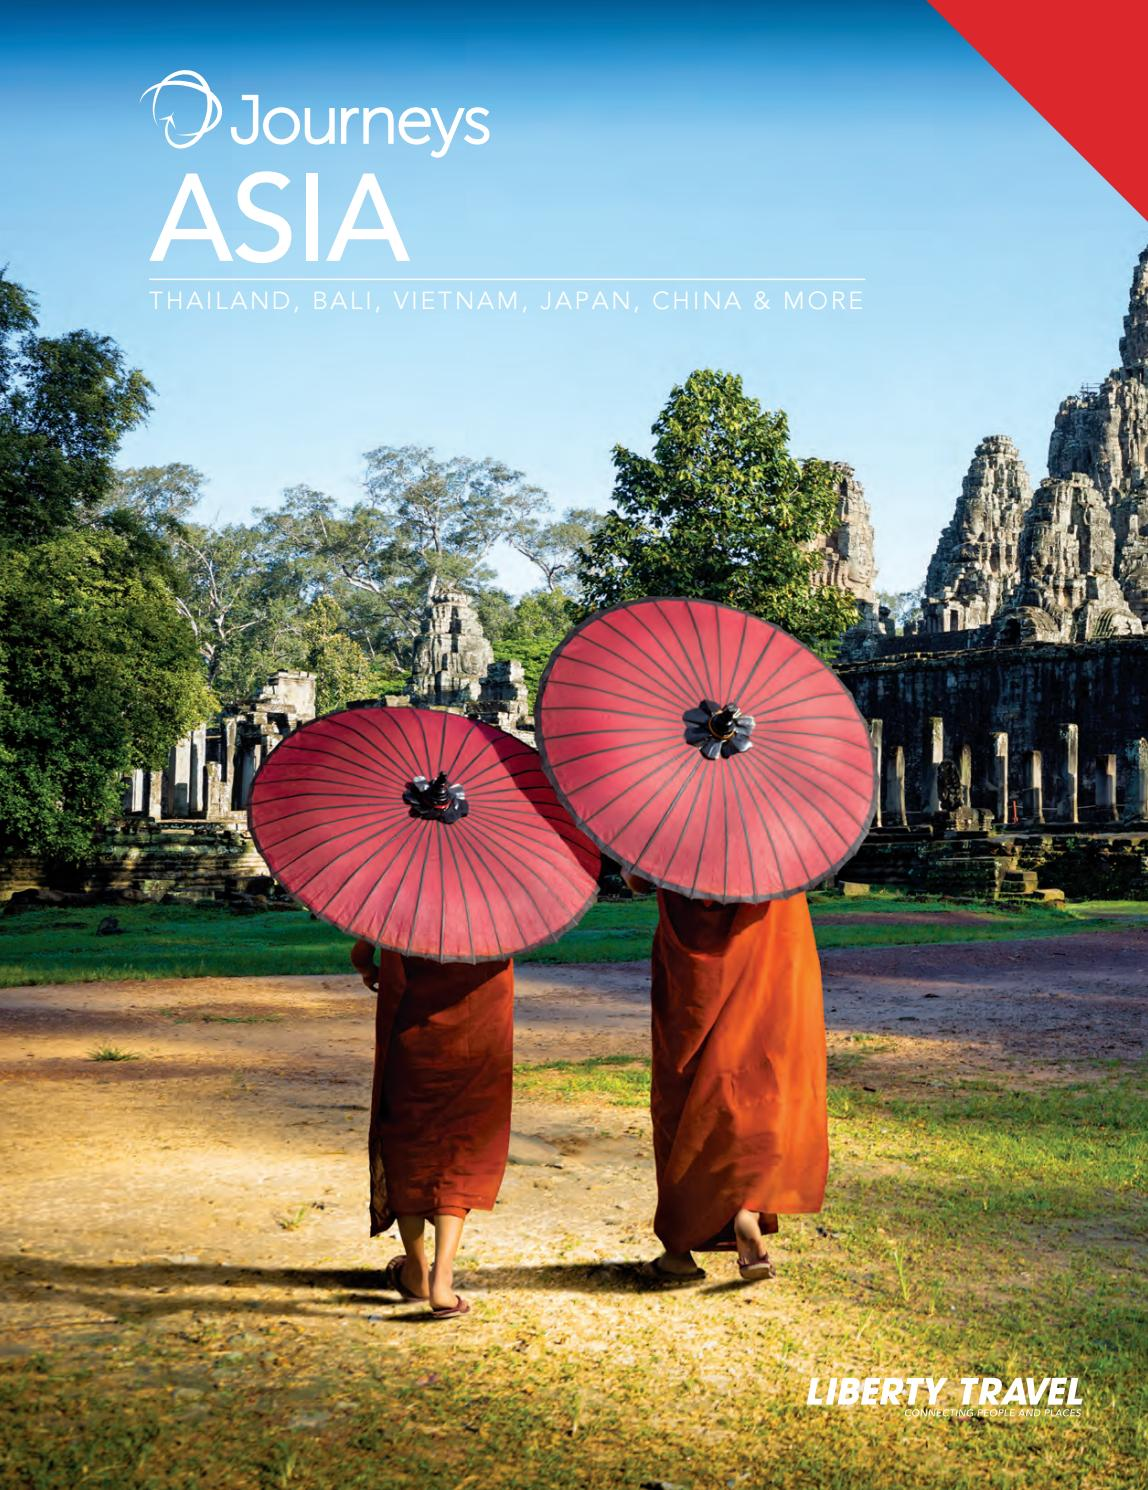 Liberty Travel | Journeys: Asia by Liberty Travel - issuu